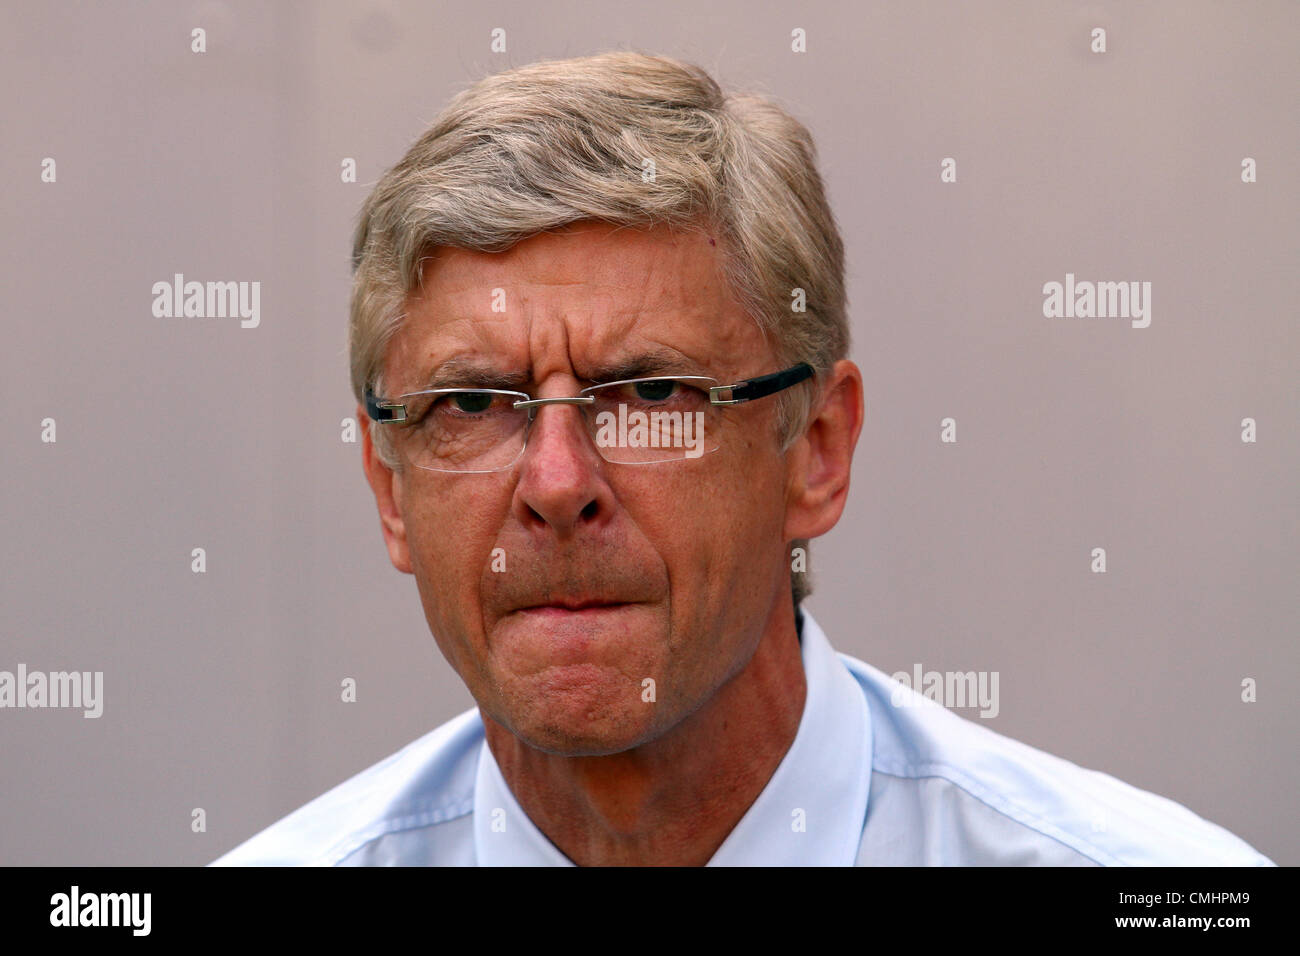 12.08.2012. Cologne, Germany.  Arsenal's head coach Arsene Wenger gives an interview before the preseaon friendly - Stock Image